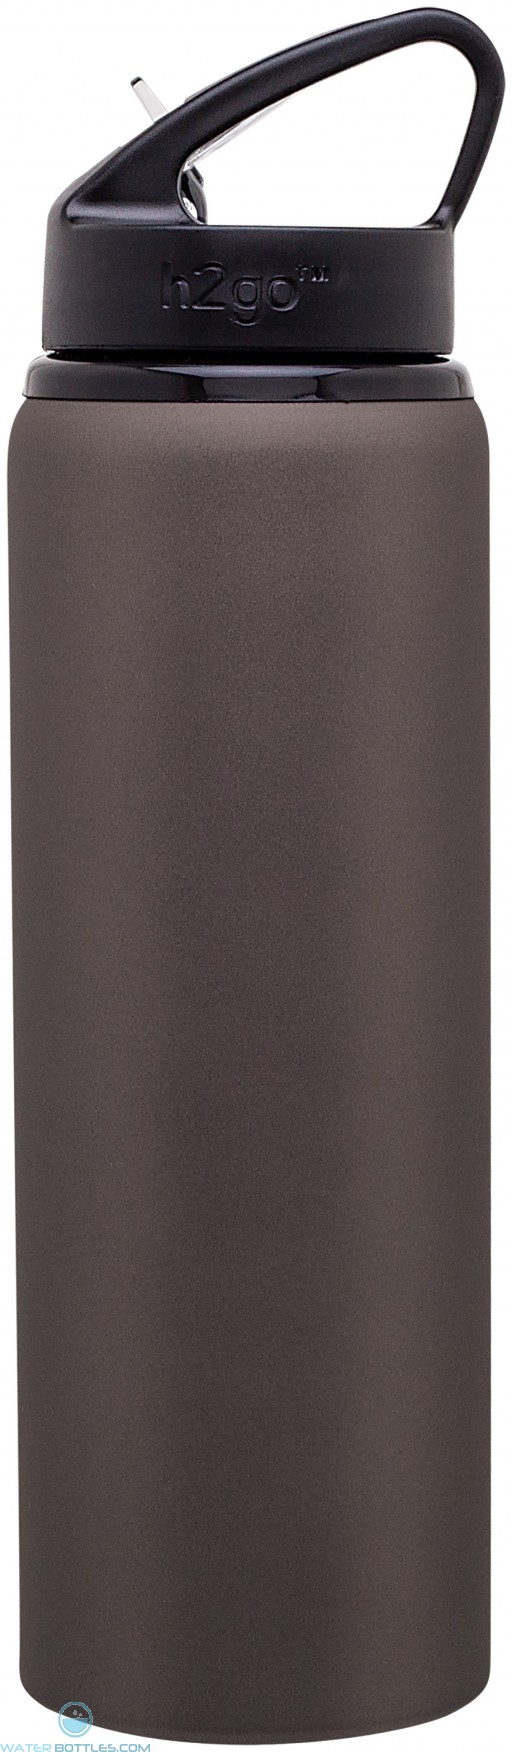 H2Go Allure Aluminum Water Bottles | 28 oz - Matte Gray